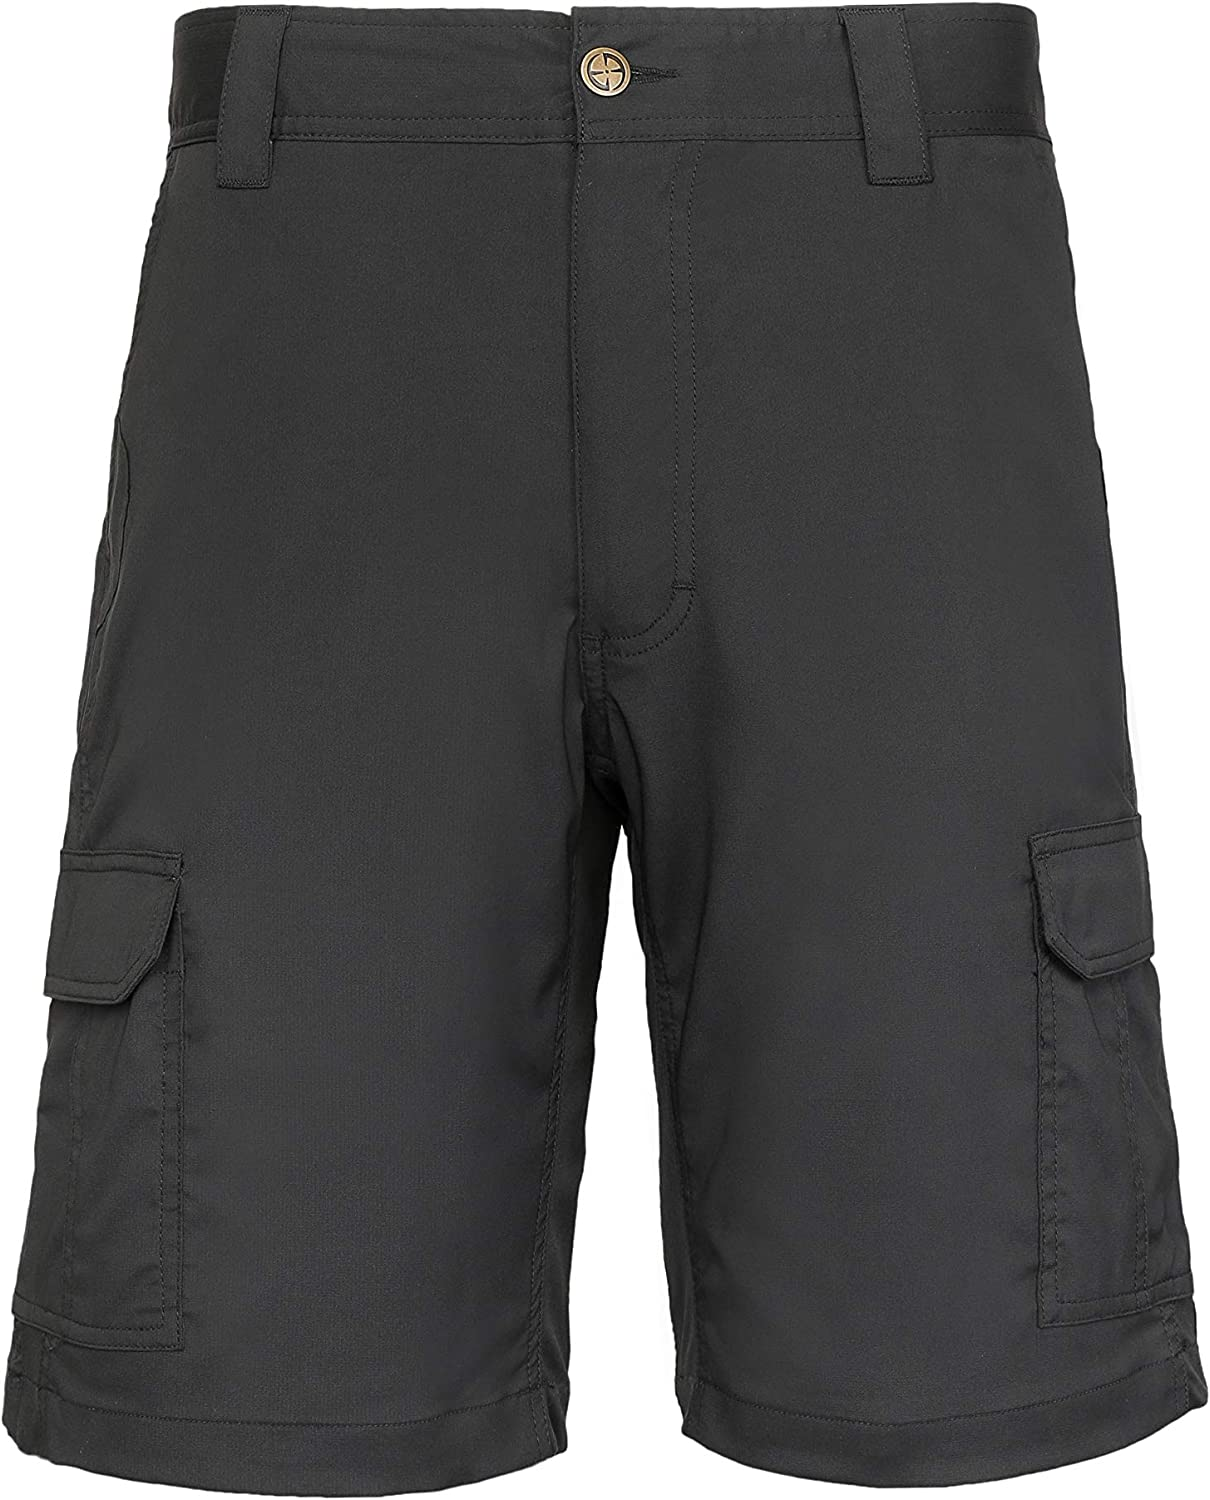 LA Police Gear Men's 6 Pocket Vapor EDC Wicking Shorts